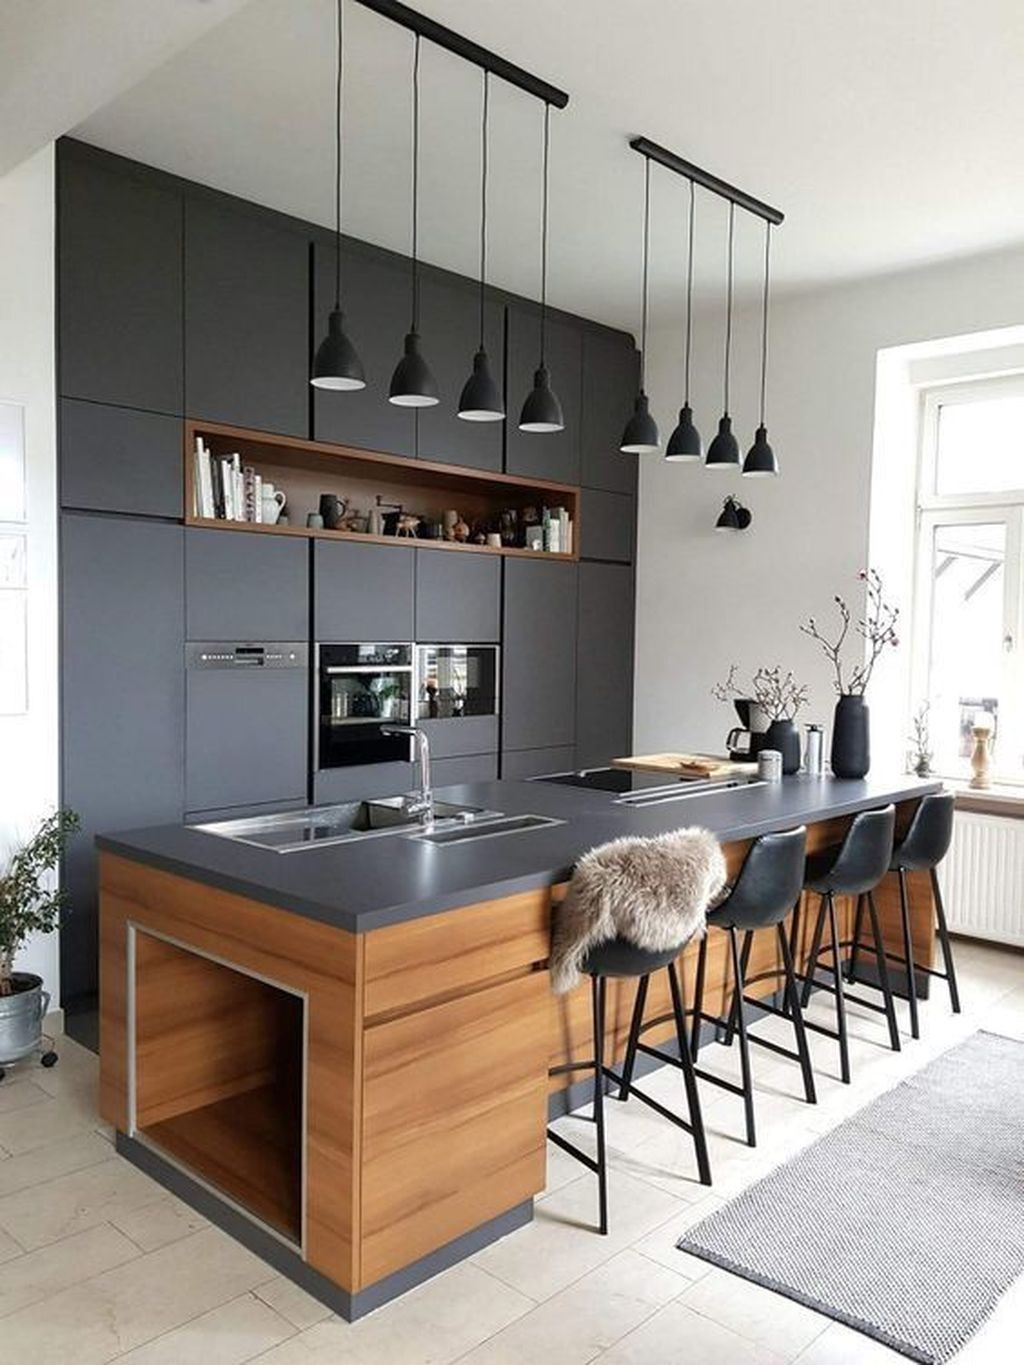 35 cool kitchen design ideas with temporary looks in 2020 on awesome modern kitchen design ideas recommendations for you id=14889